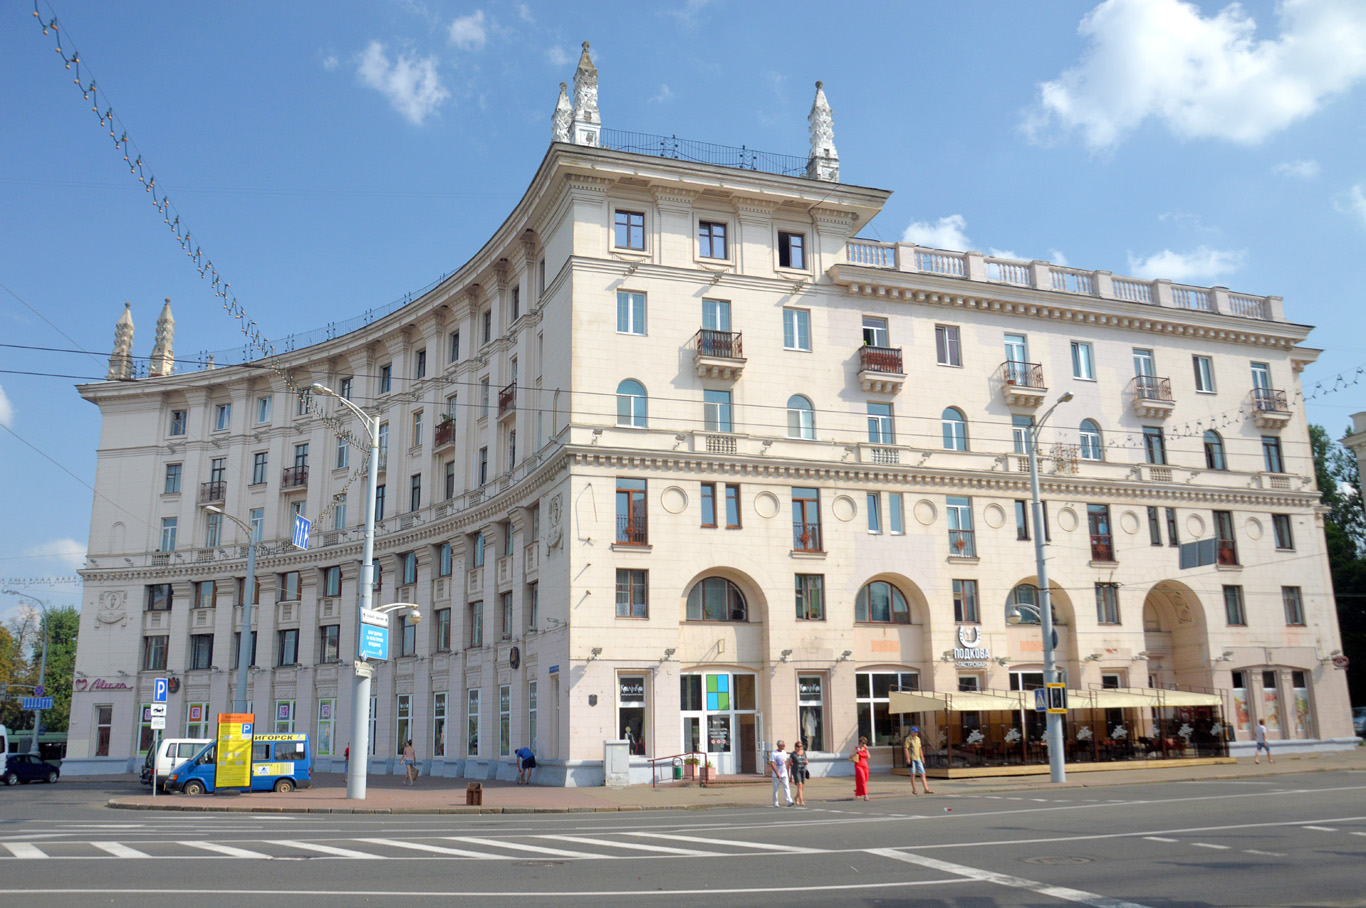 Typical architecture in Minsk